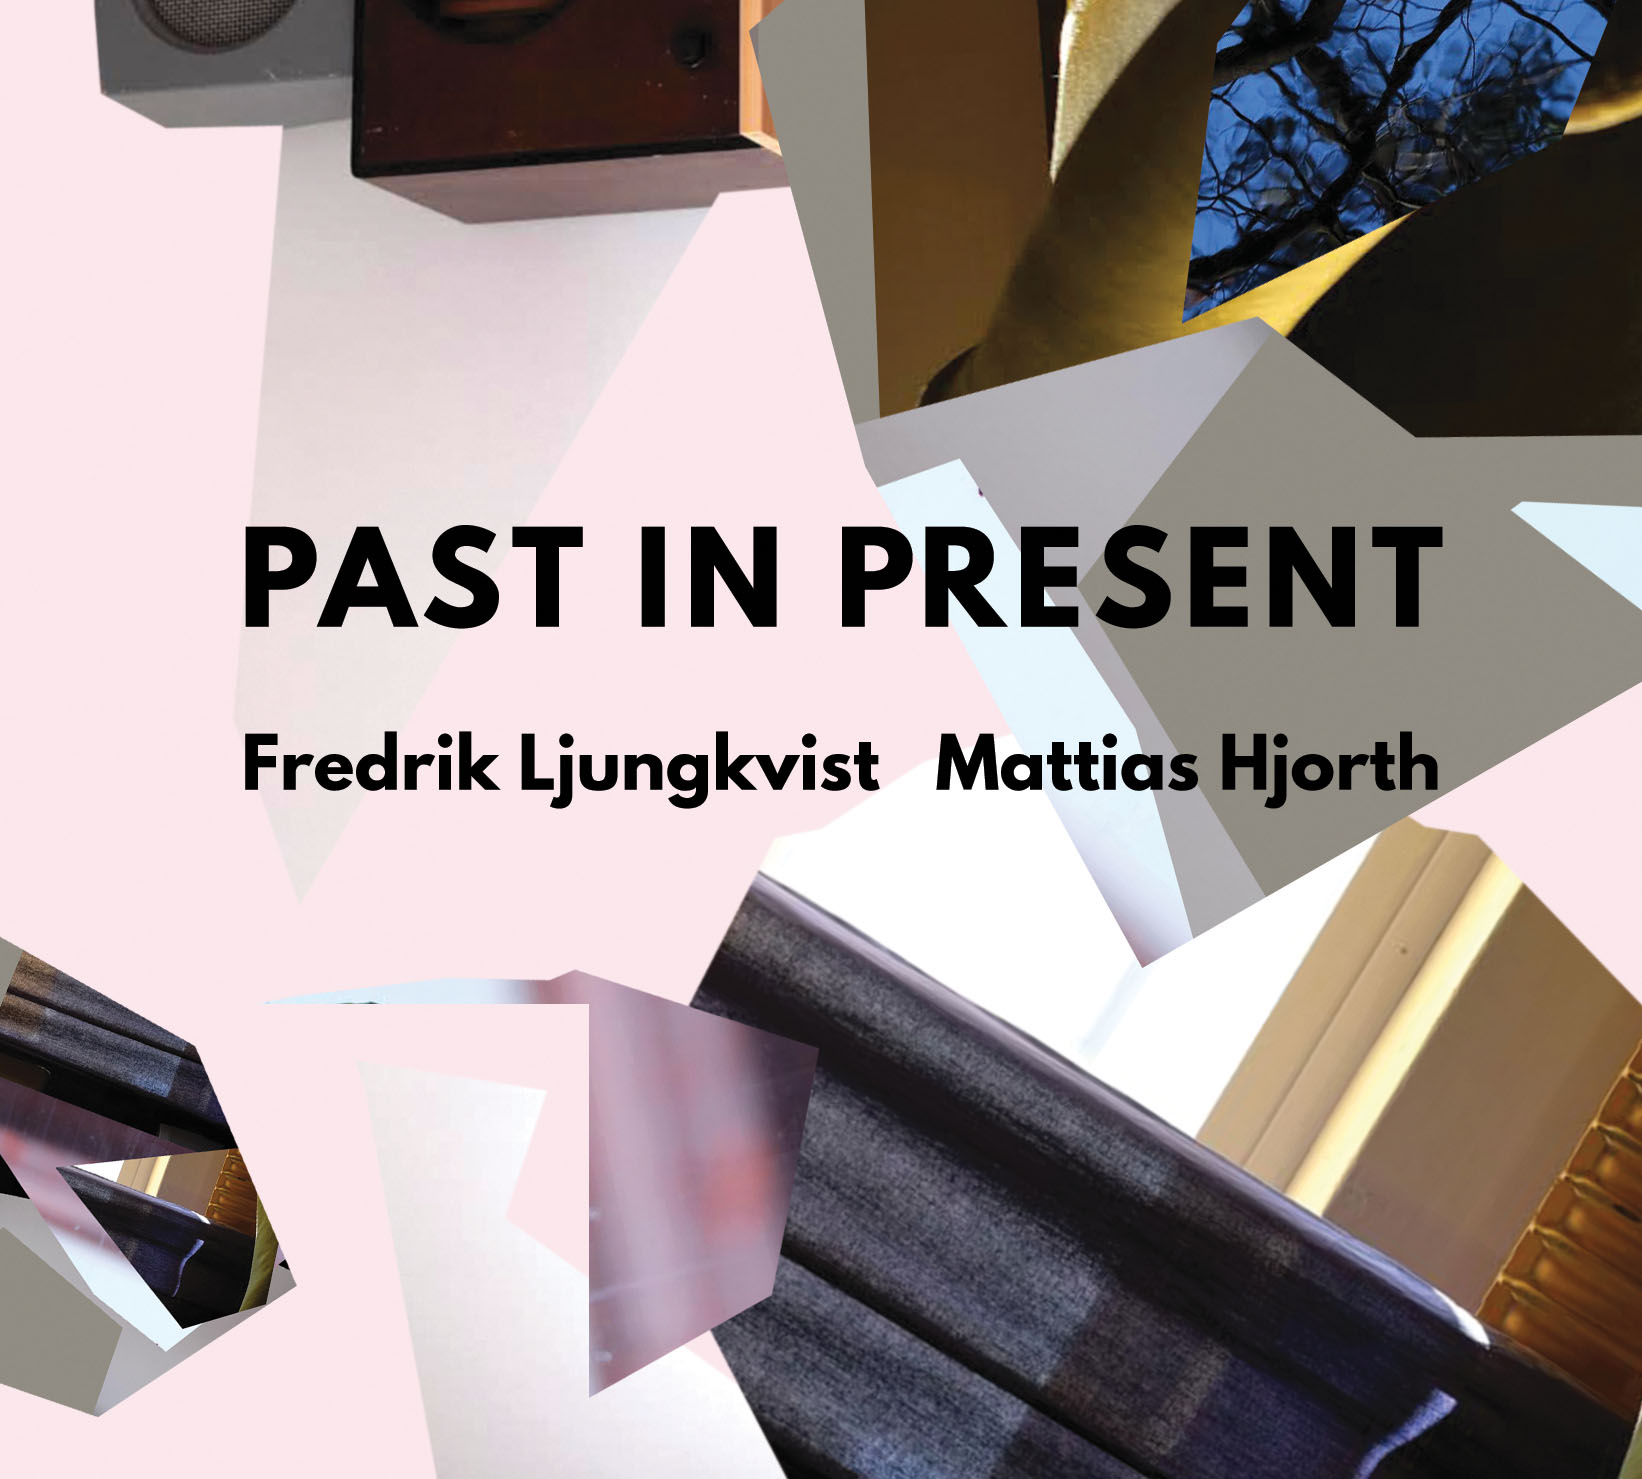 Fredrik Ljungkvist/Mattias Hjorth: Past in Present